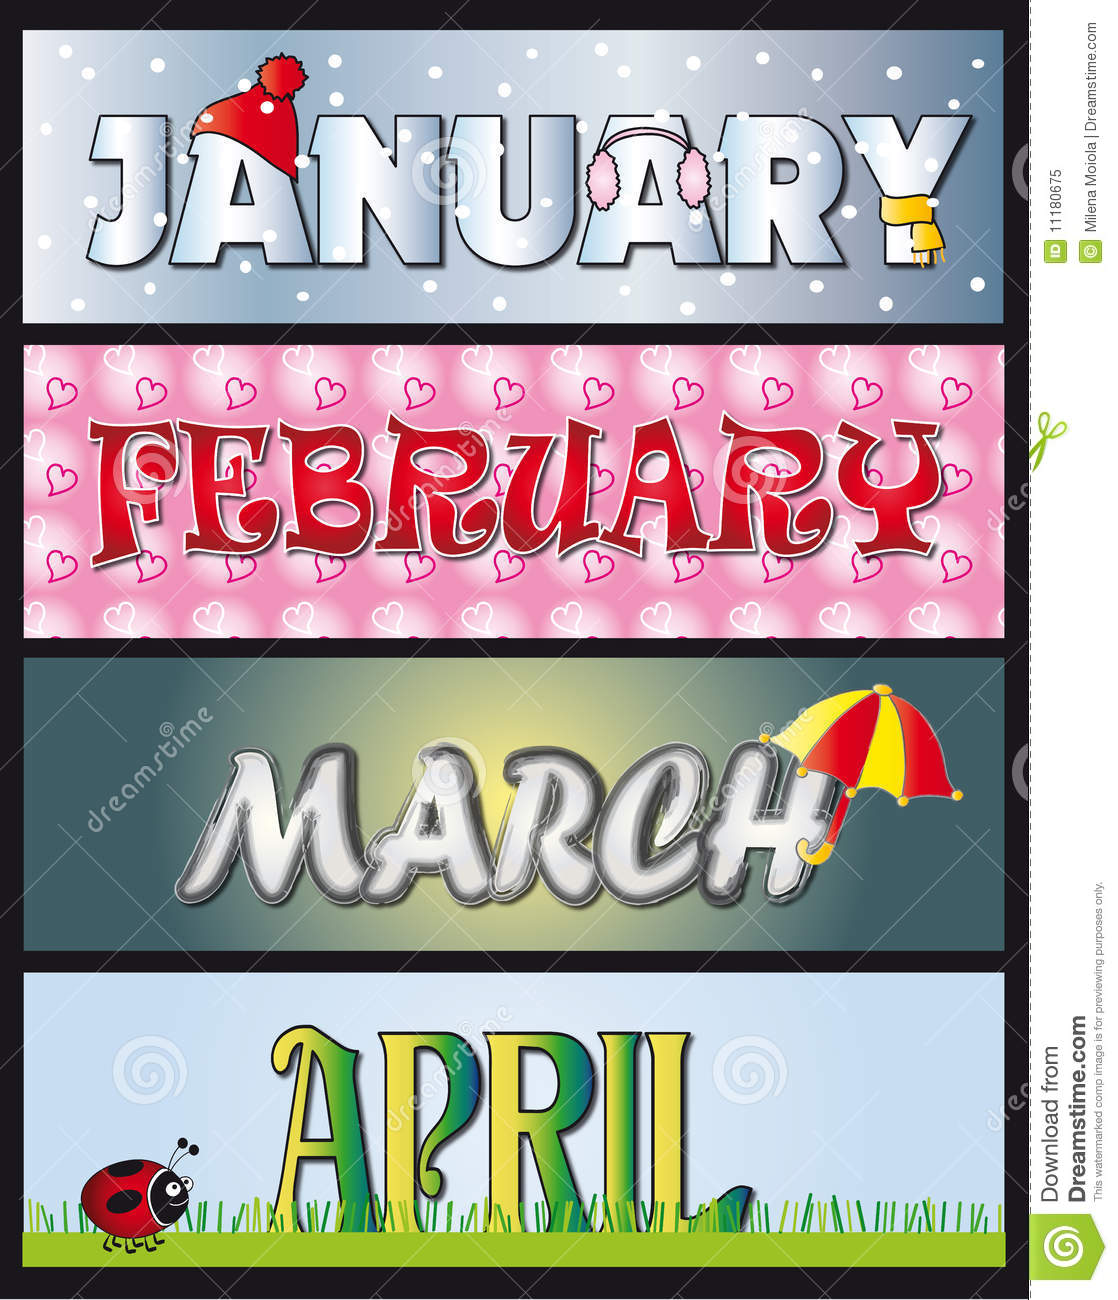 ... February March April Royalty Free Stock Photo - Image: 11180675